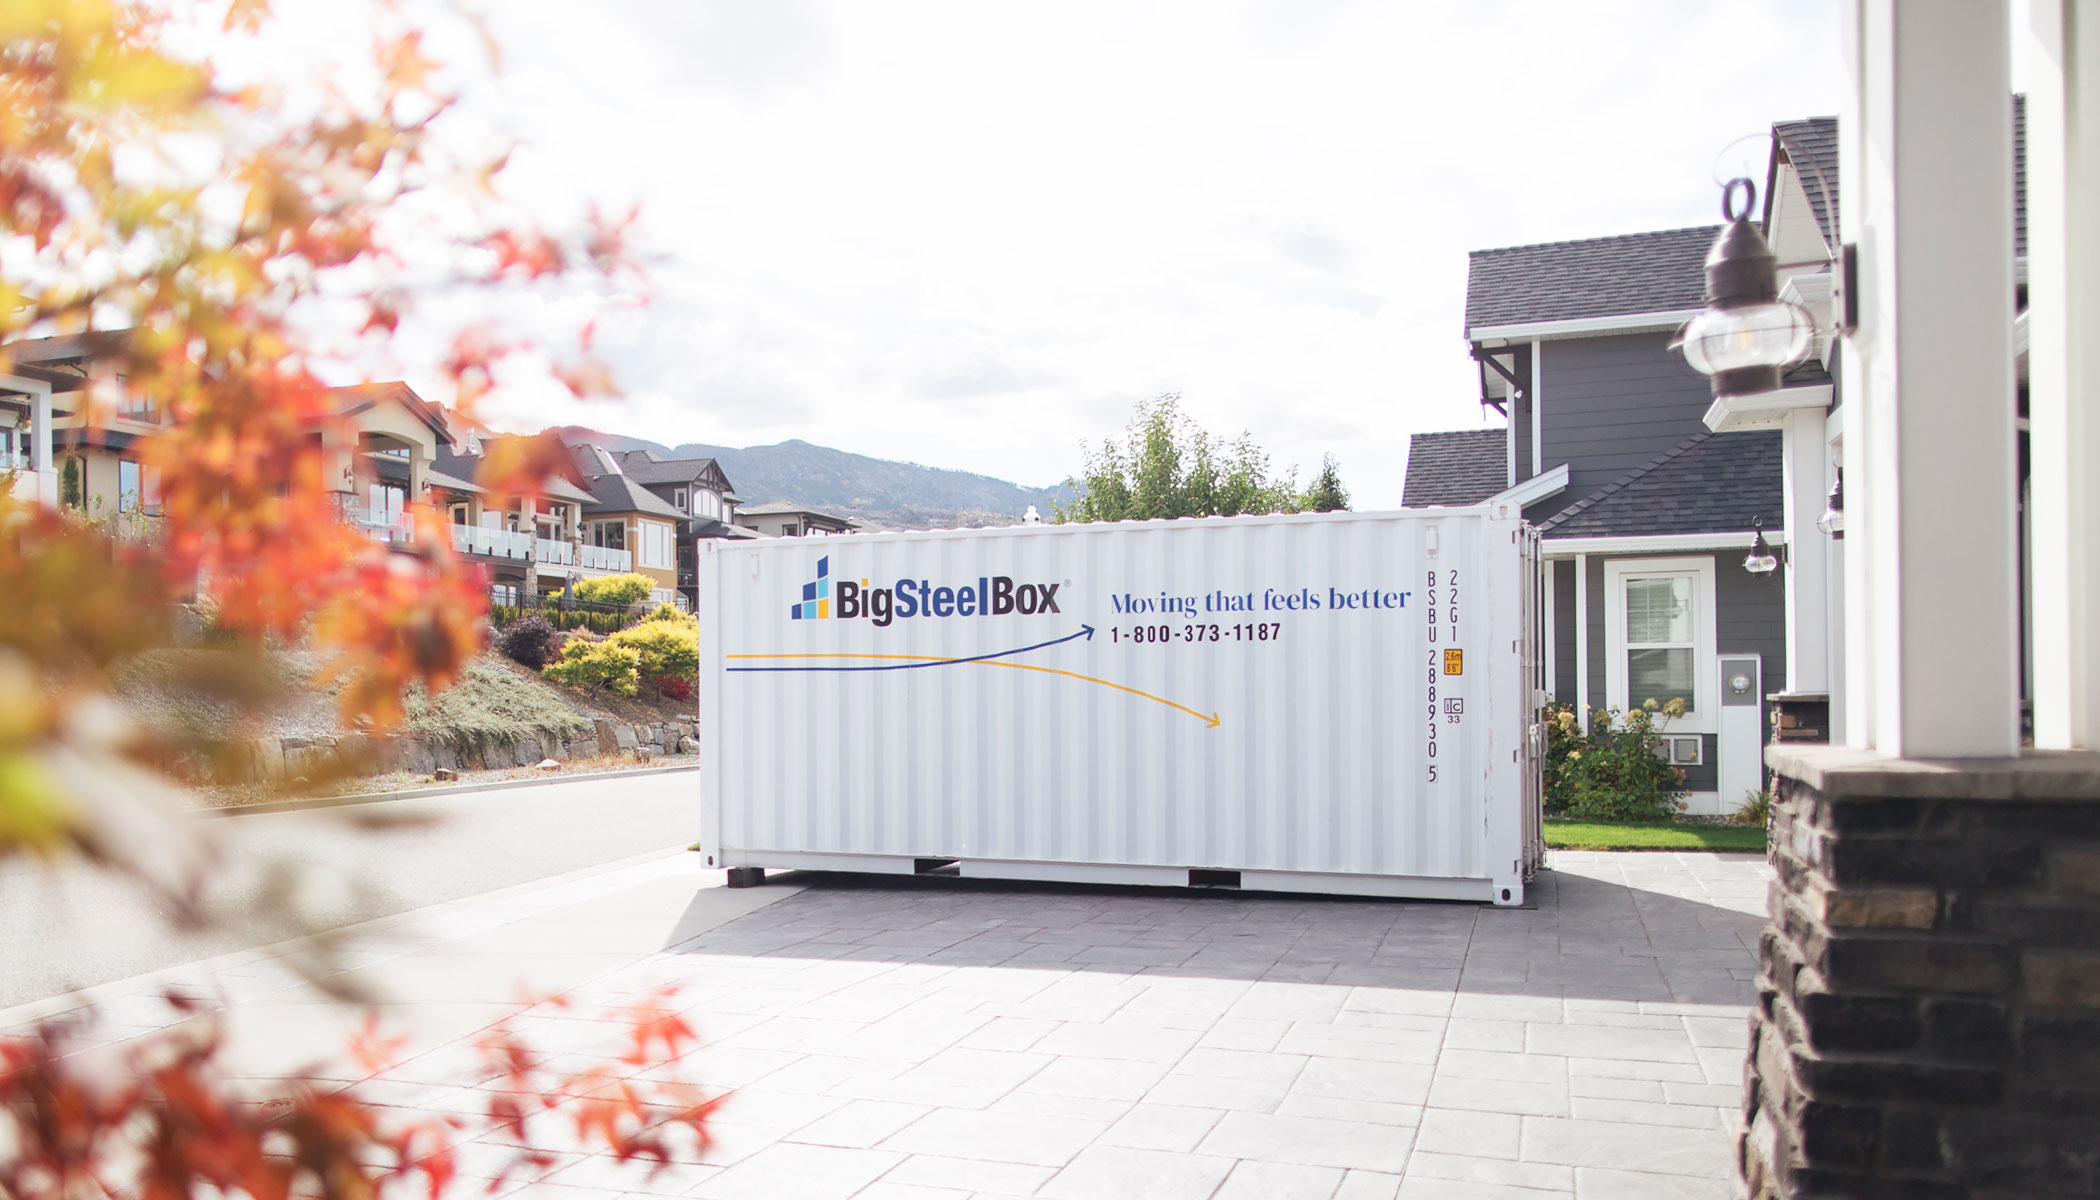 Declutter your home when for sale - BigSteelBox